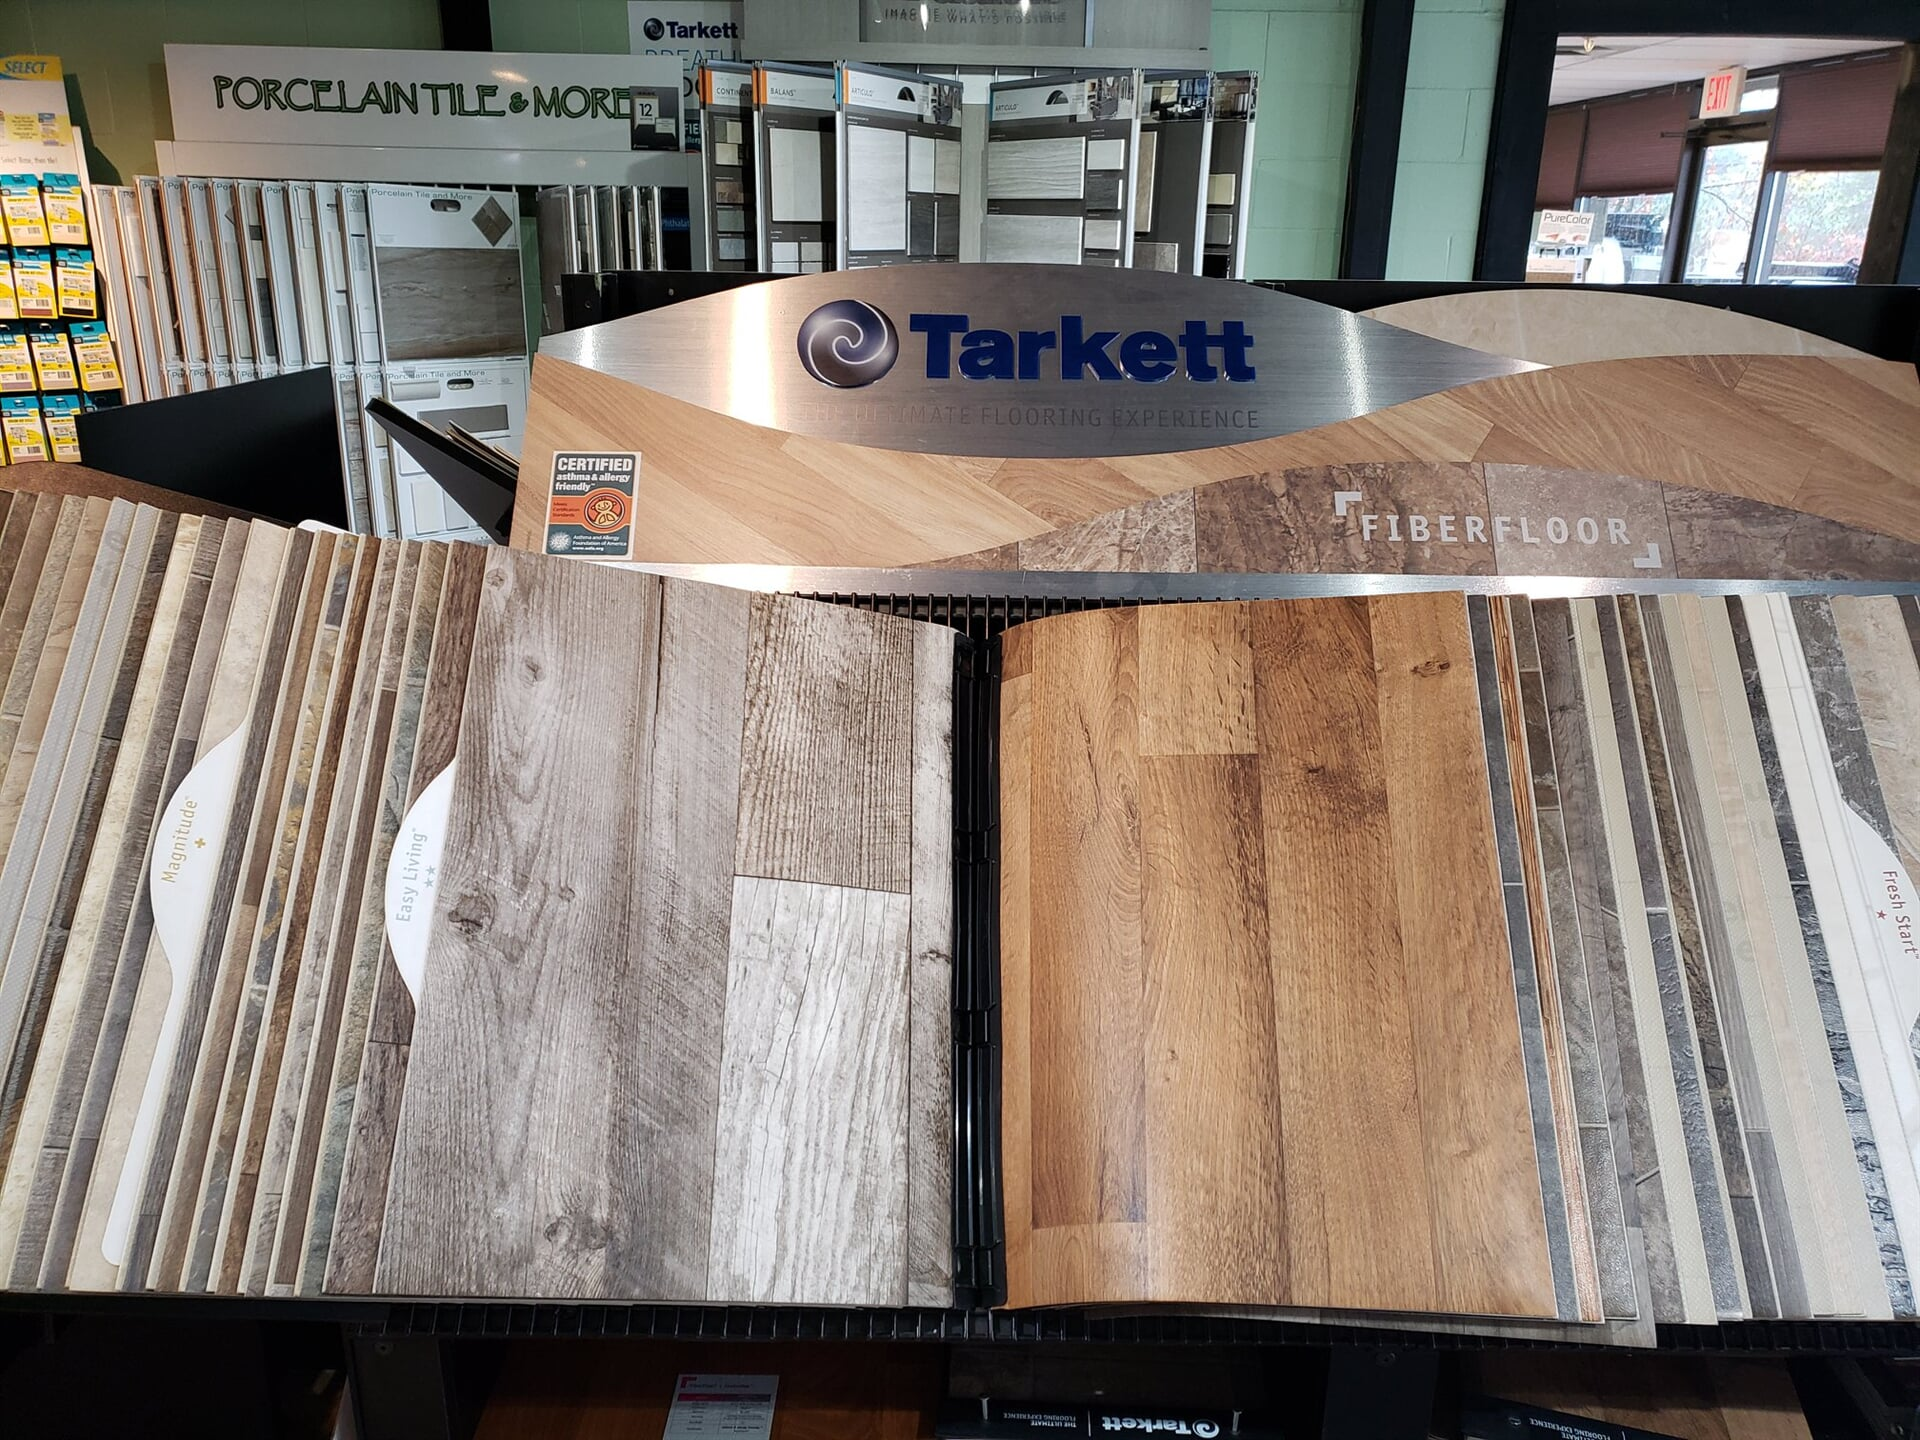 Tarkett Fiberfloor for your Nashua, NH home from ADF Flooring LLC